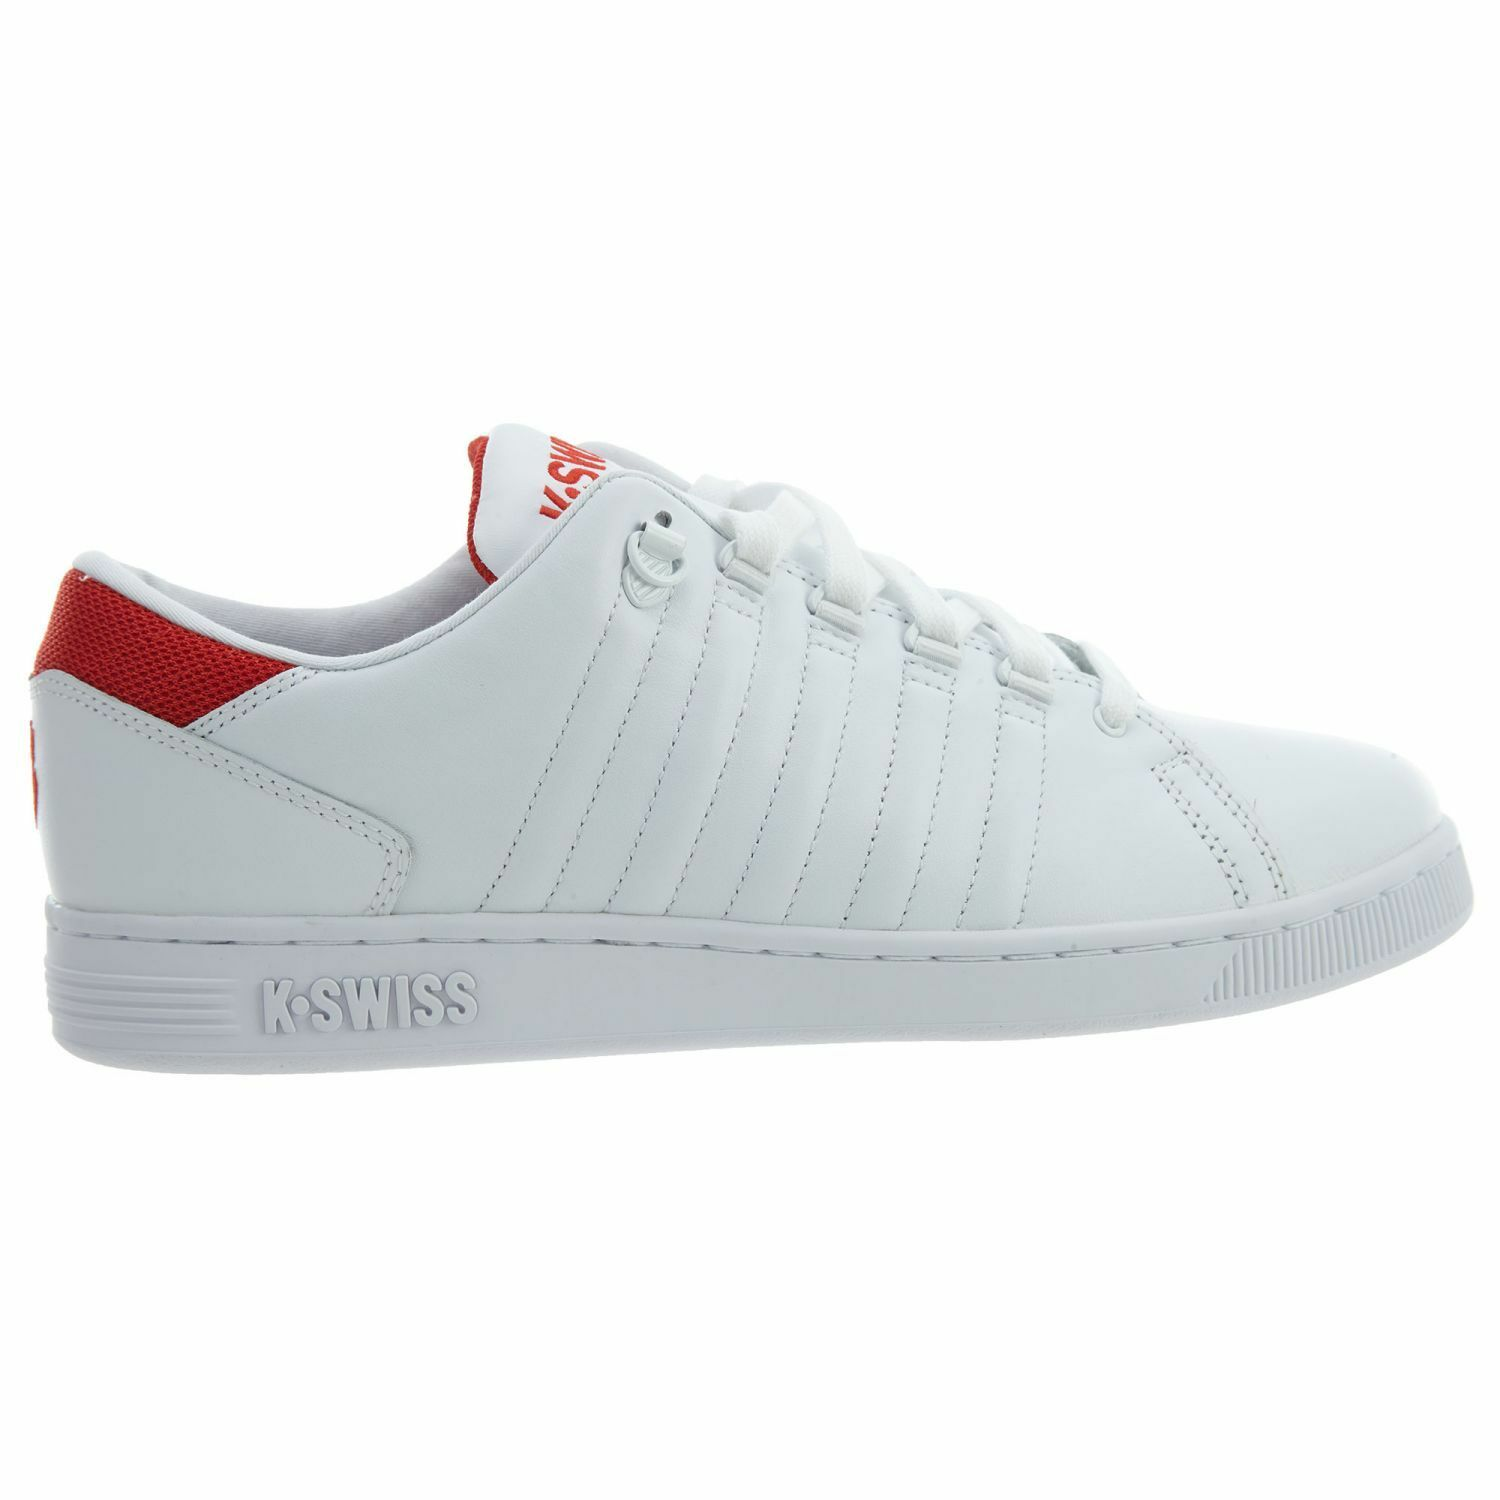 K-Swiss Lozan III TT Mens 05398-164 White Red Leather Athletic shoes Size 8.5